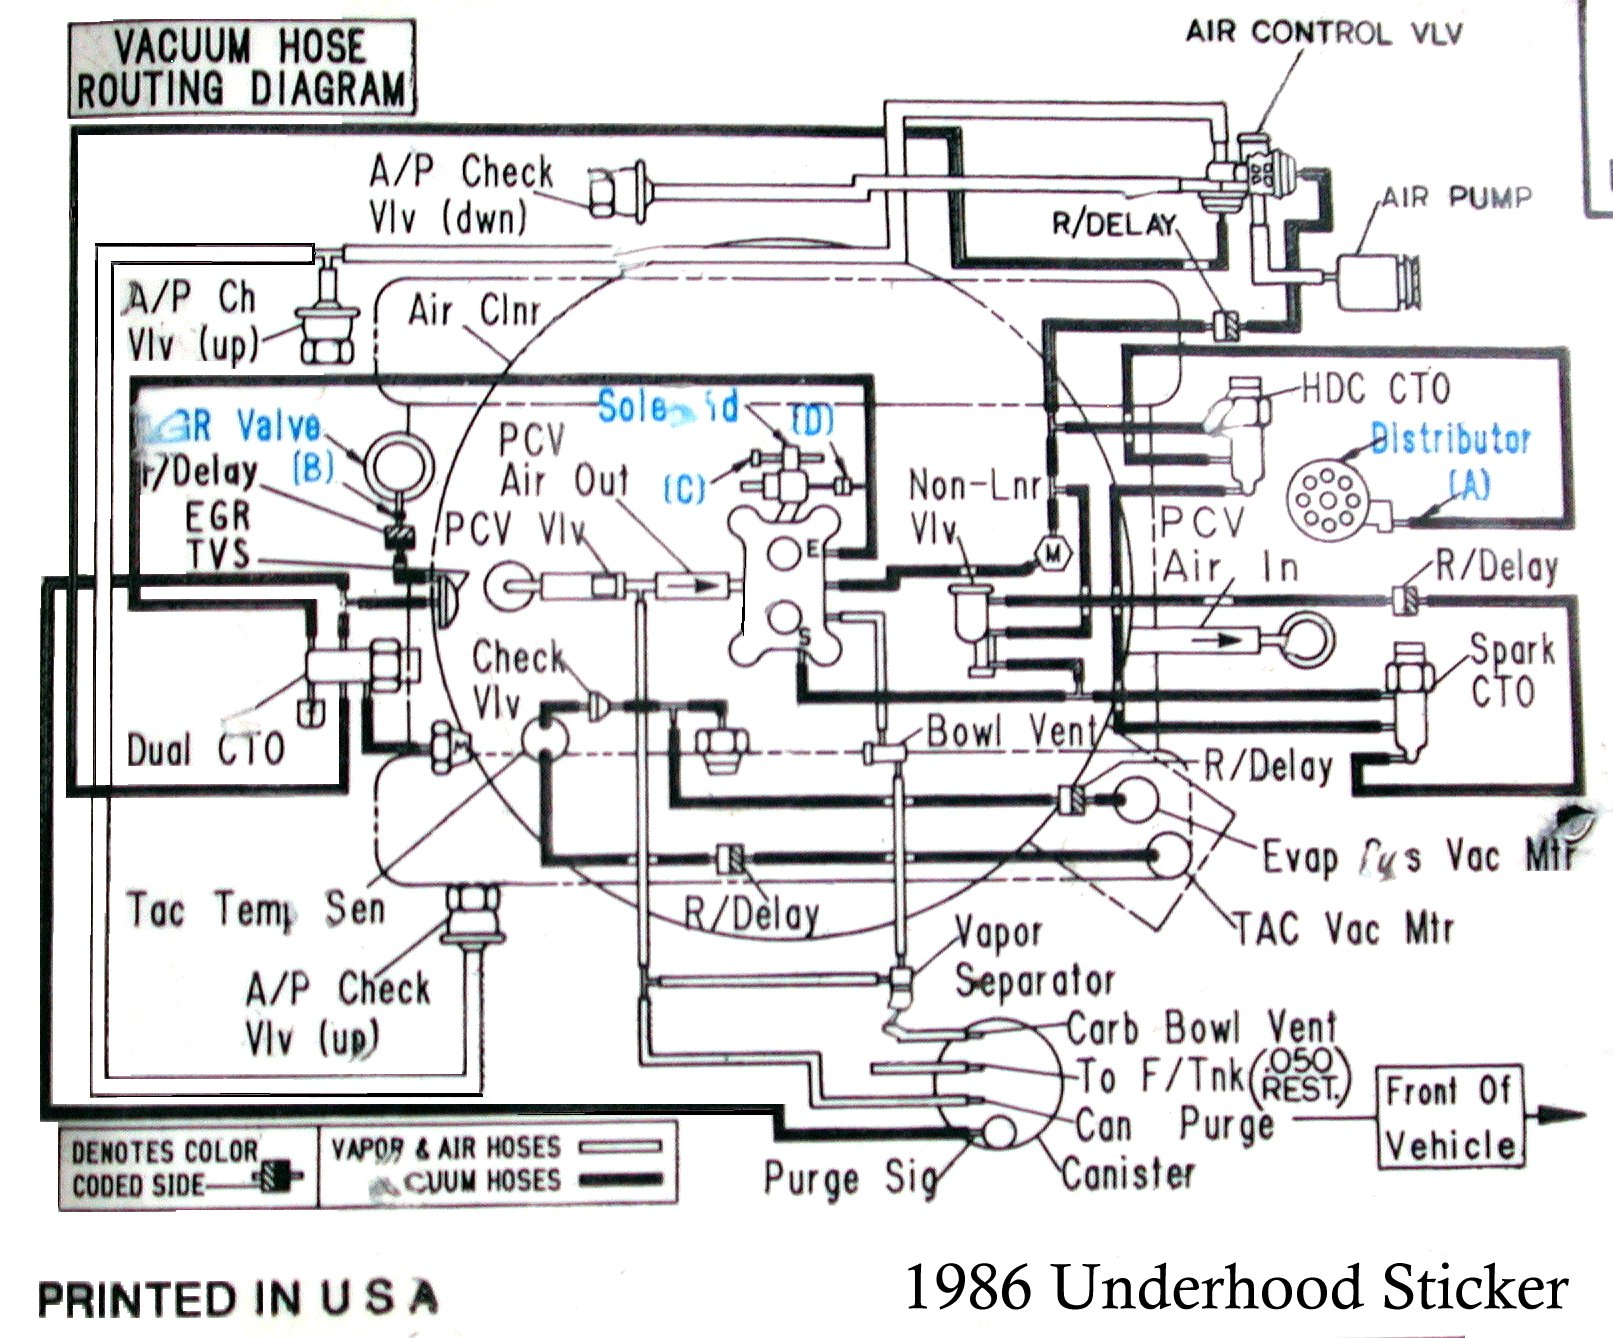 86 Jeep Comanche Wiring Diagram. Jeep. Auto Wiring Diagram